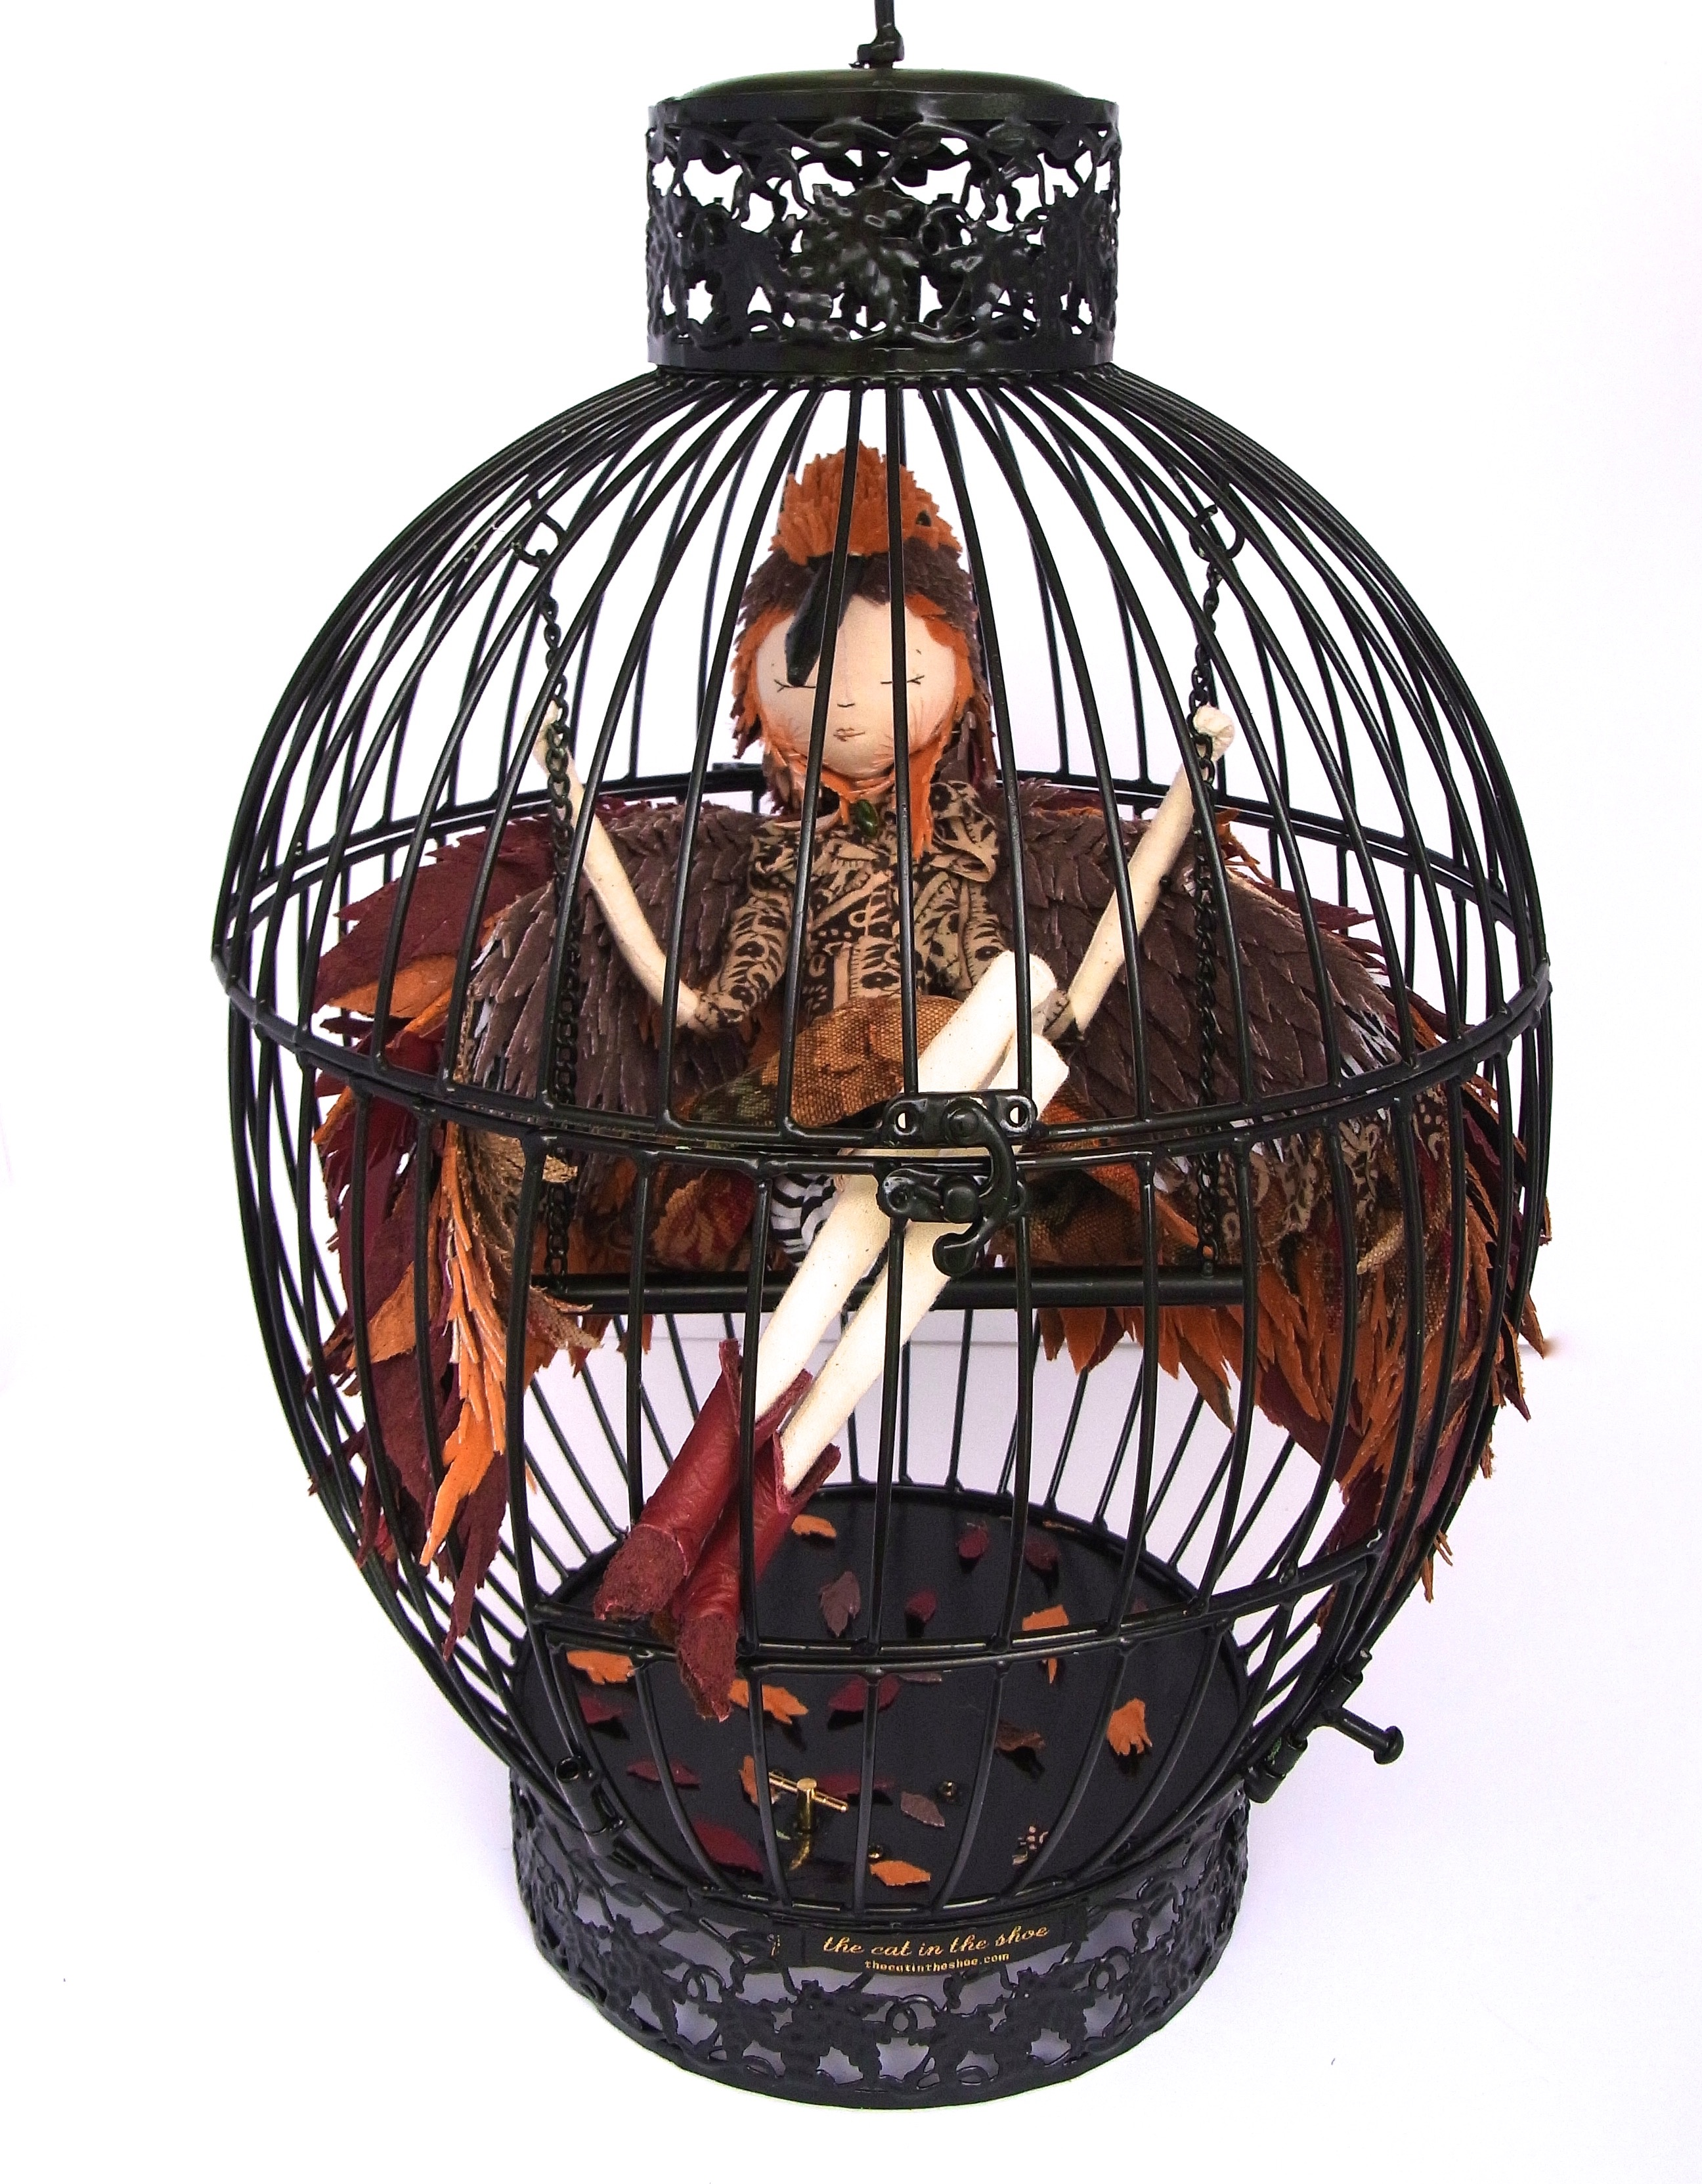 BIRD IN CAGE 2015